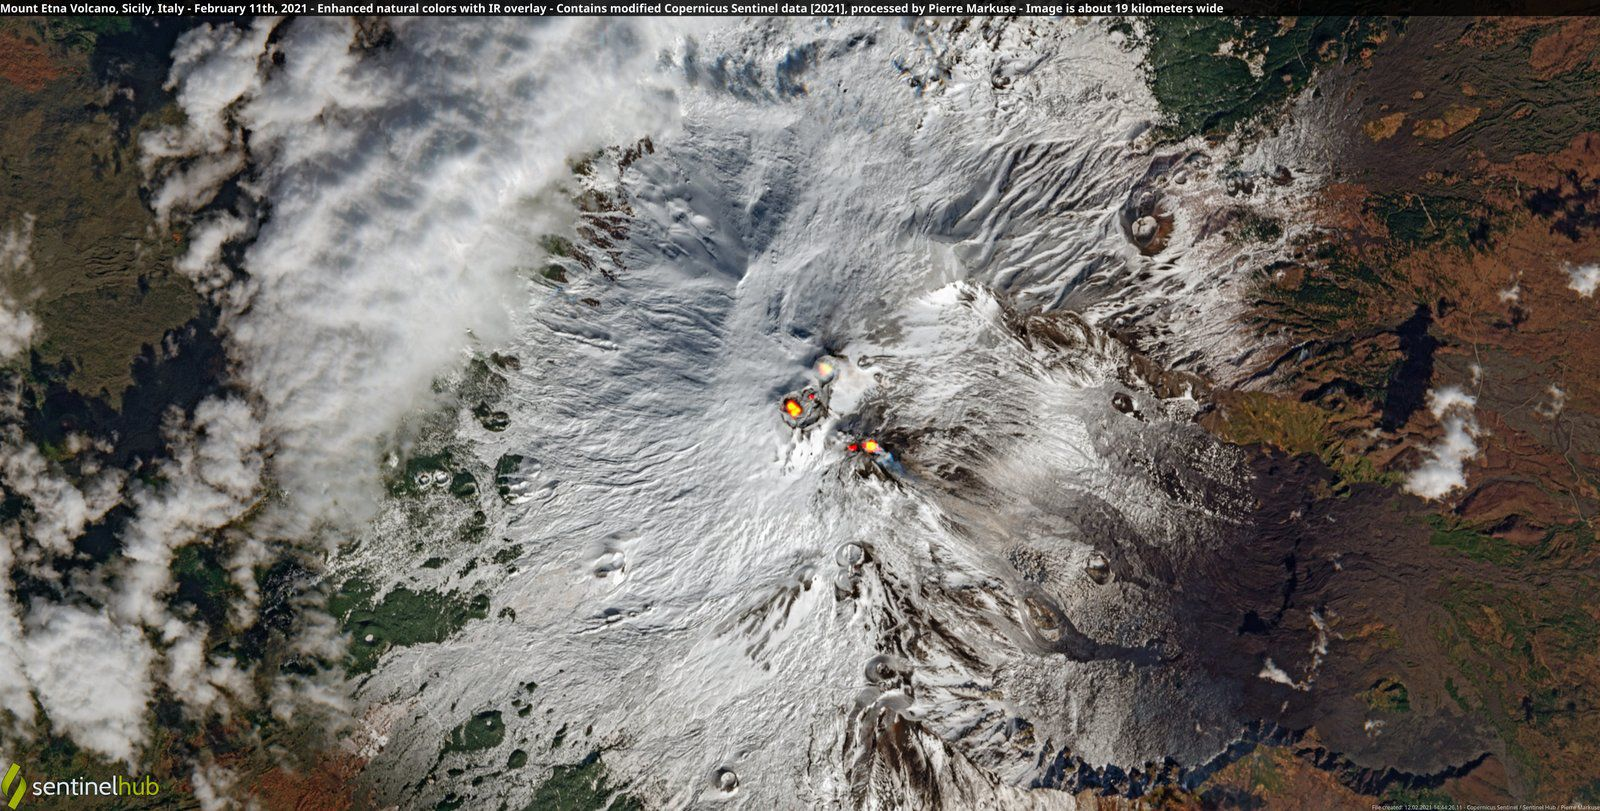 Etna - Sentinel-2 image enhanced nat. colors + IR overlay 02.11.2021 - by Pierre Markuse / Copernicus data - one click to enlarge